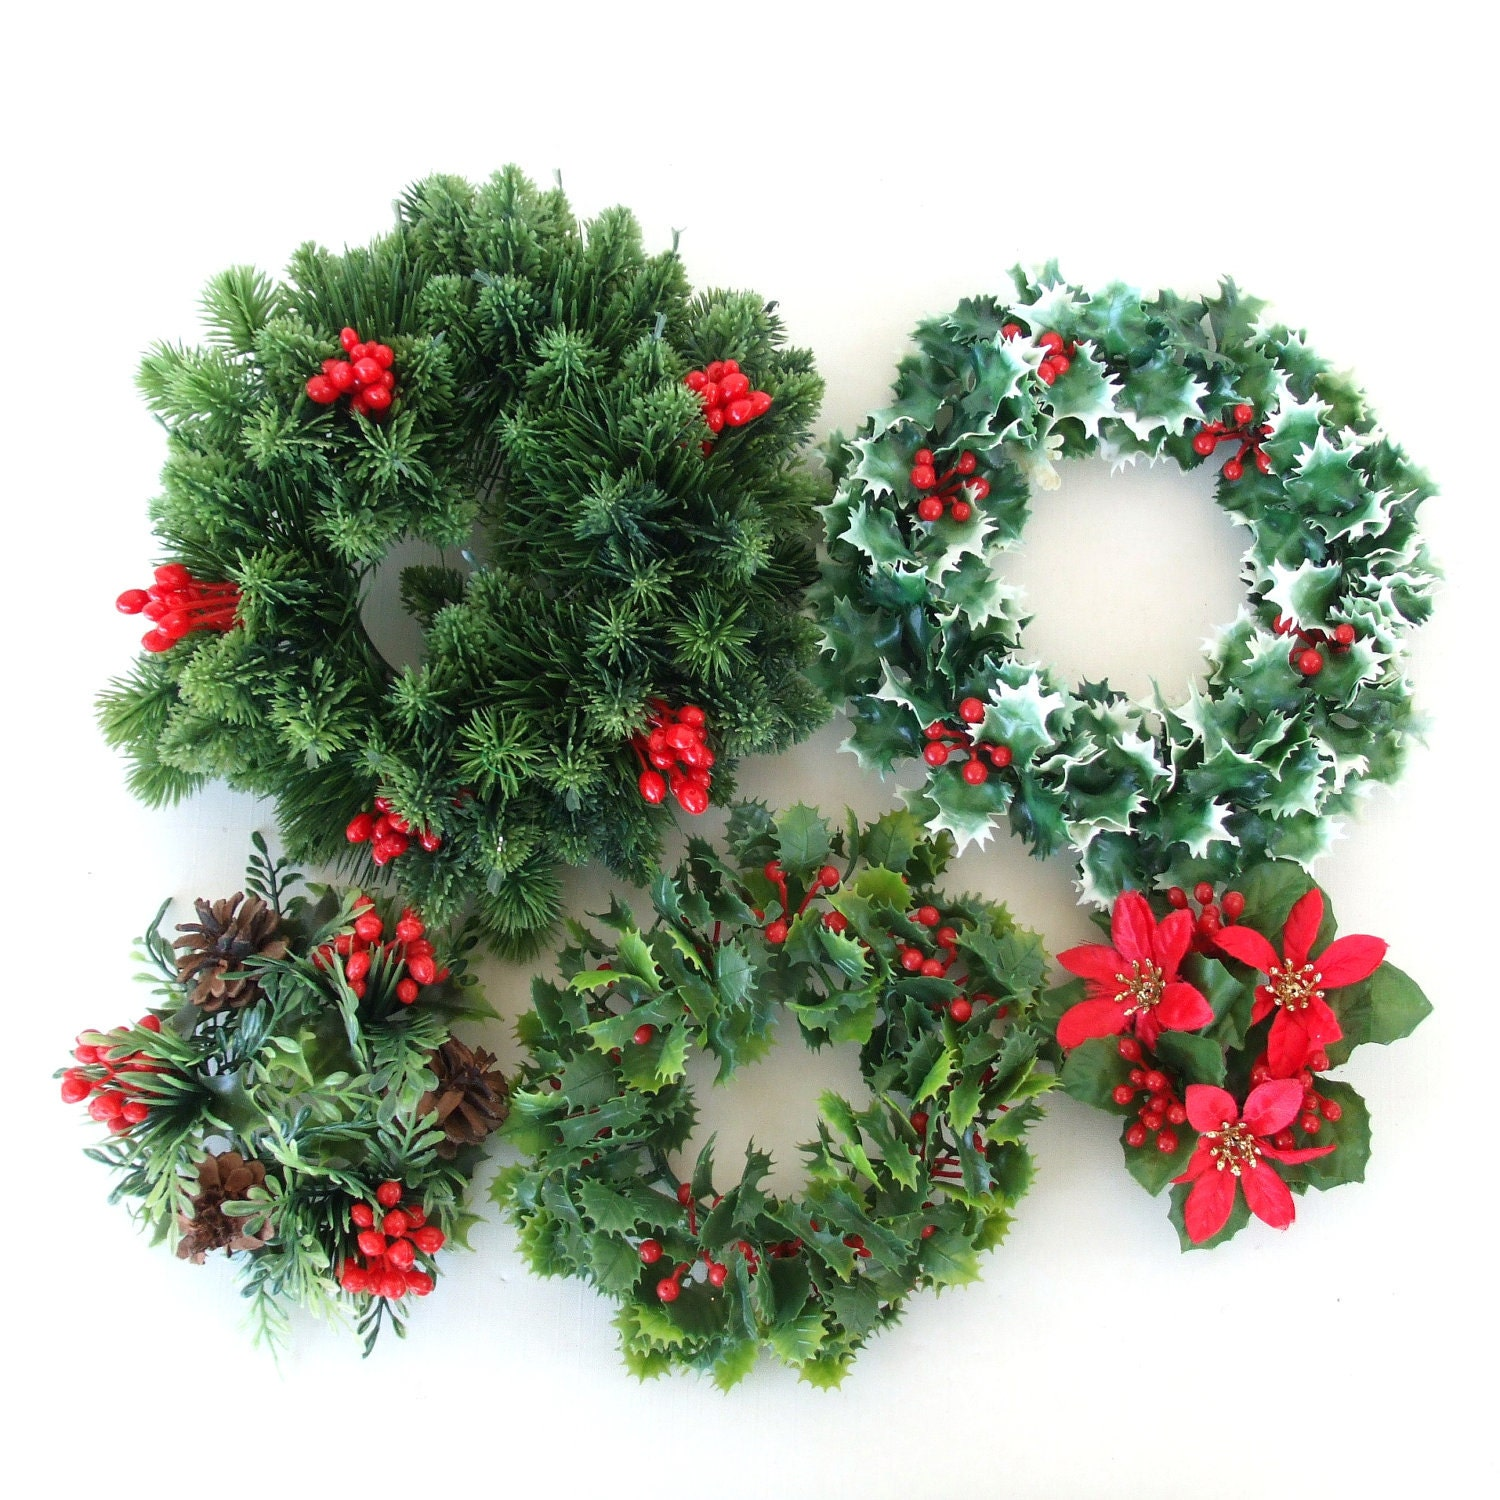 Fake Christmas Wreath Holiday Candle Holders Plastic